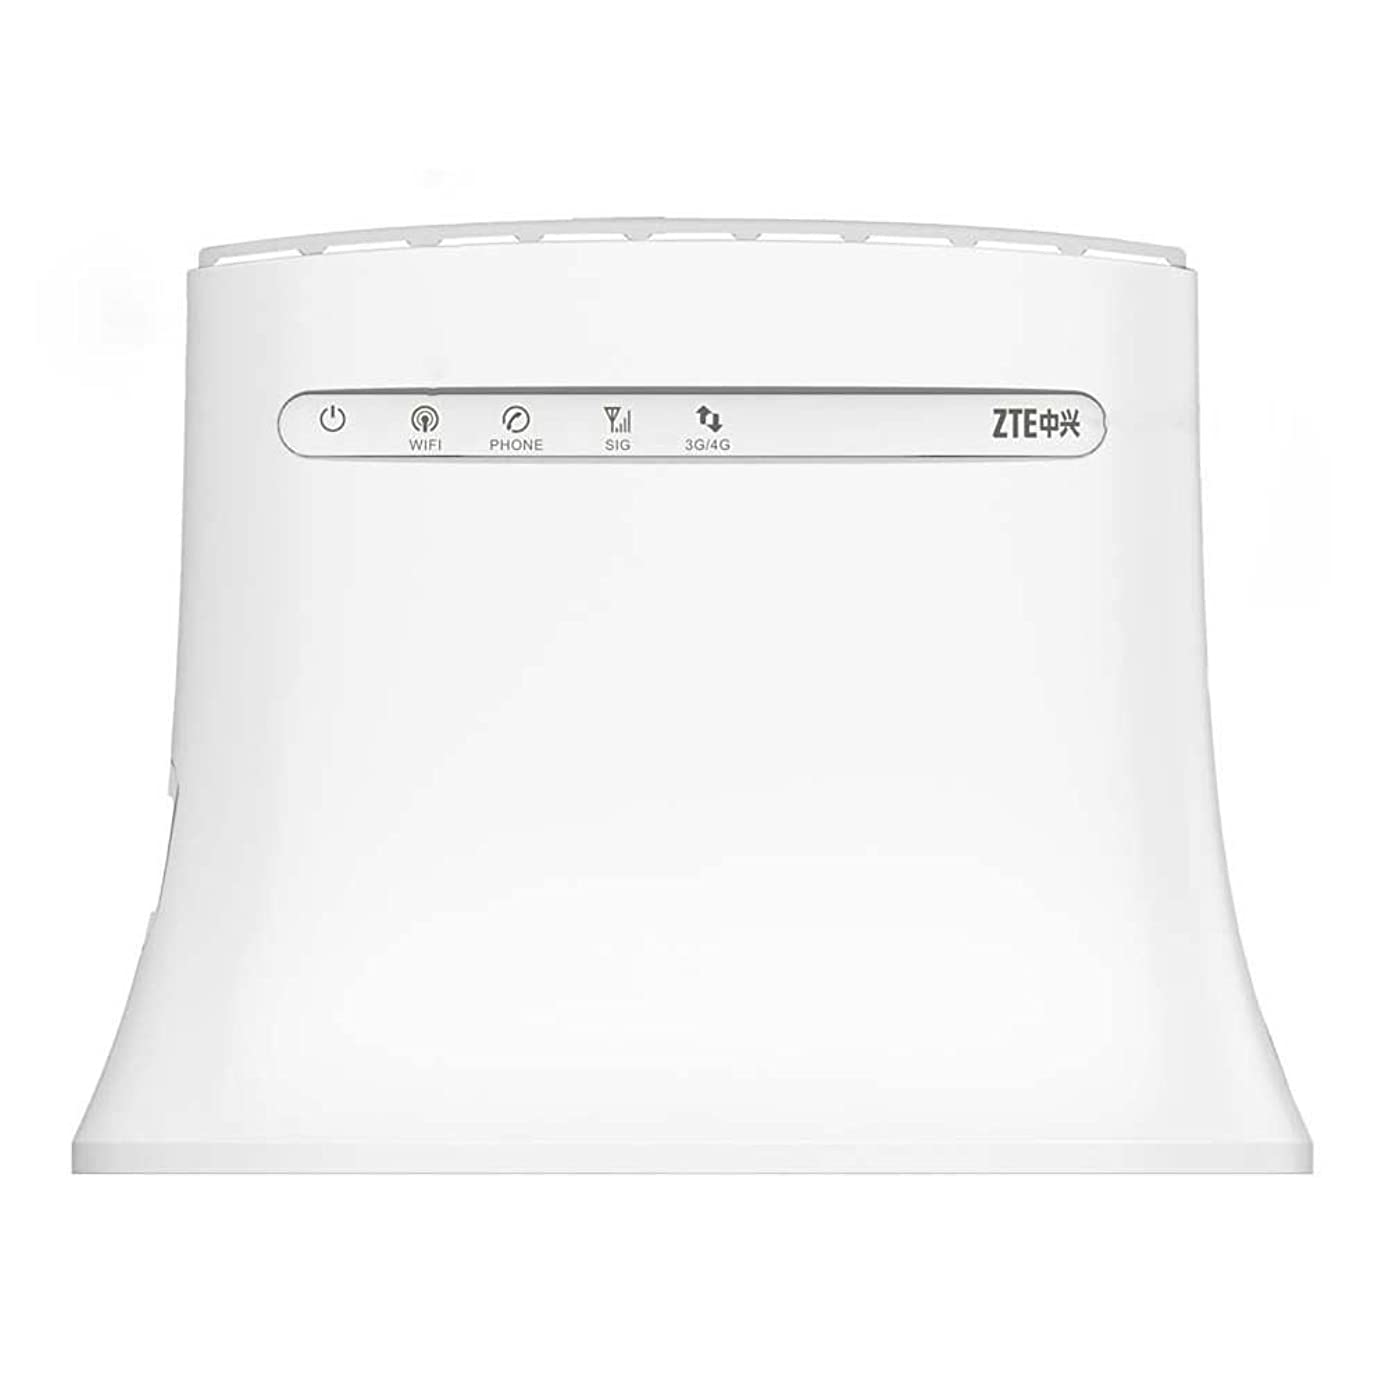 Wi-FI Router ZTE MF283+ Unlocked 4G LTE NOT USA European Bands + 4 RJ45 (4G LTE Europe, Asia, Middle East, Africa)